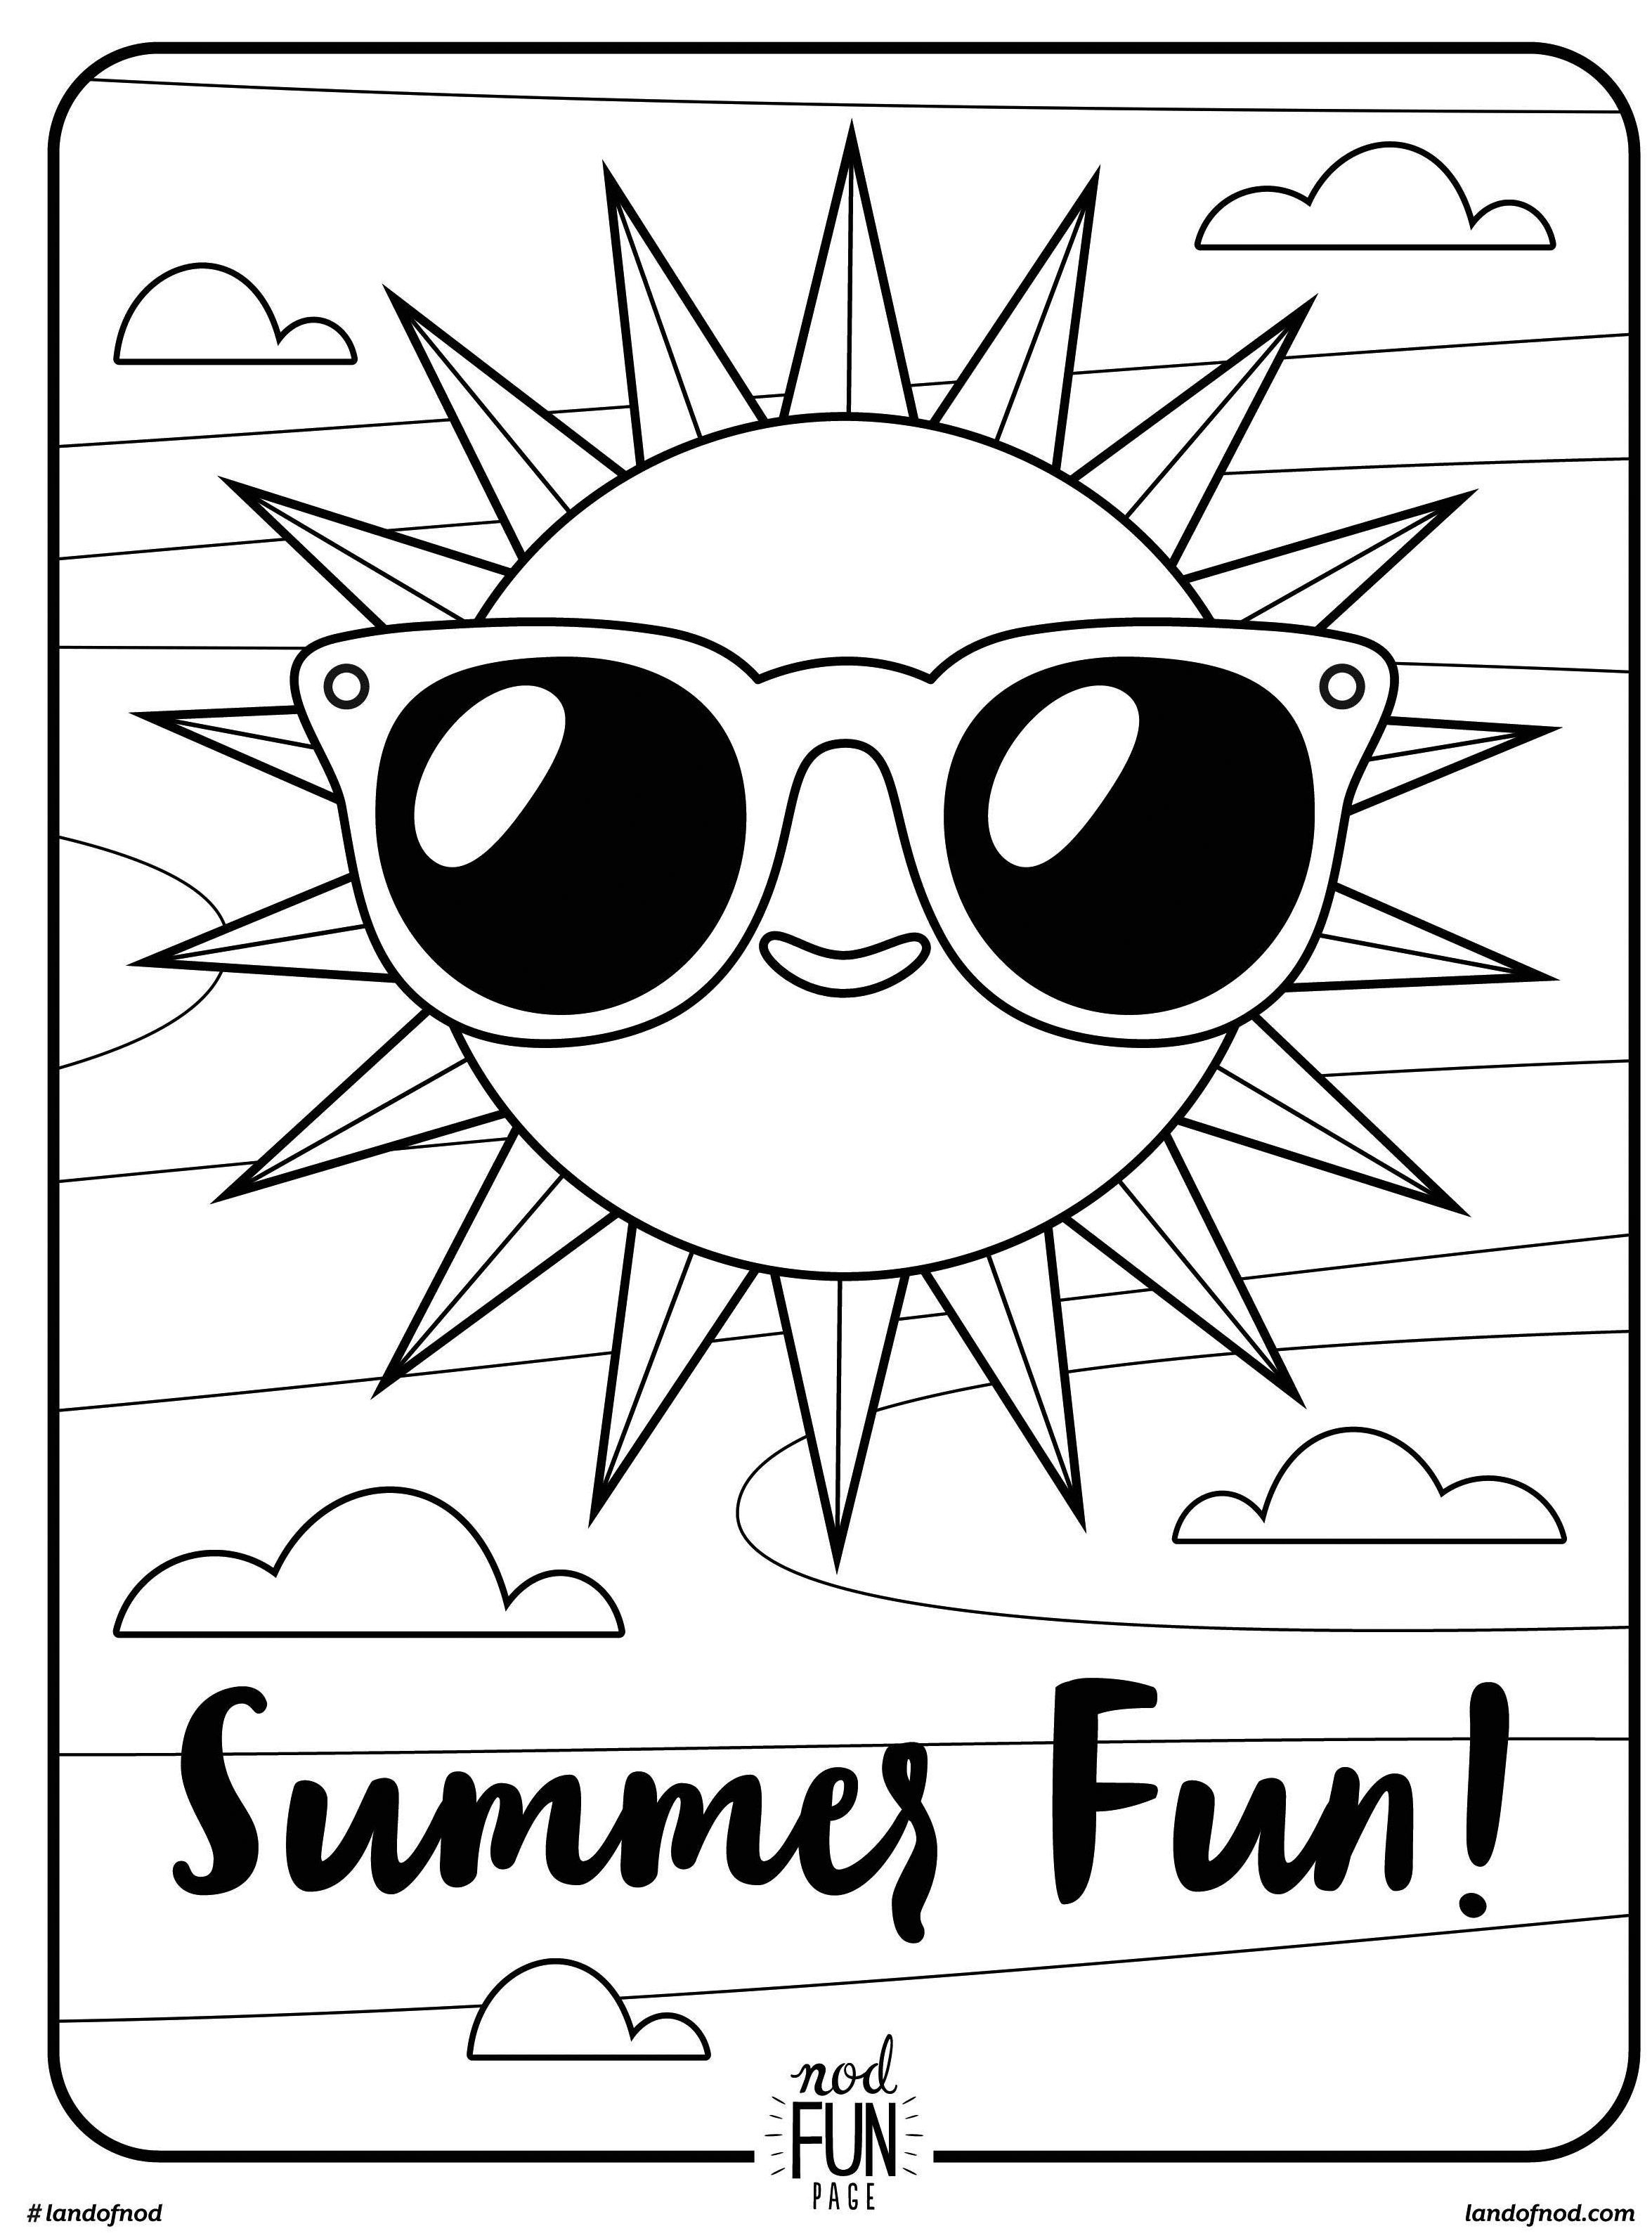 Free Printable Coloring Page: Summer Fun | Summer//underwater - Free Printable Summer Coloring Pages For Adults